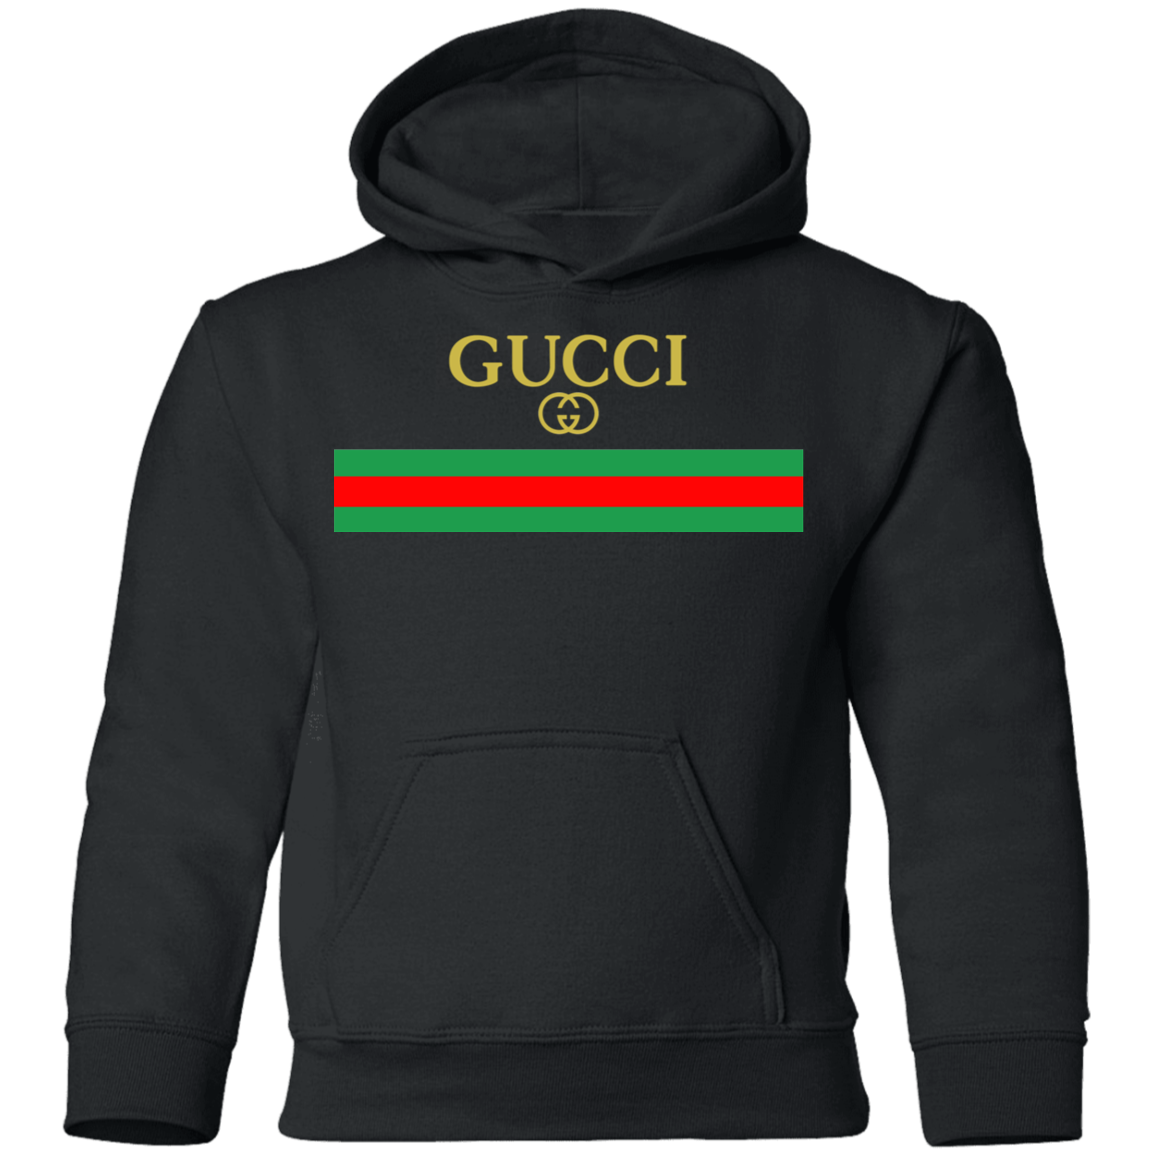 Gucci Logo Vintage Inspired Shirt Youth Pullover Hoodie